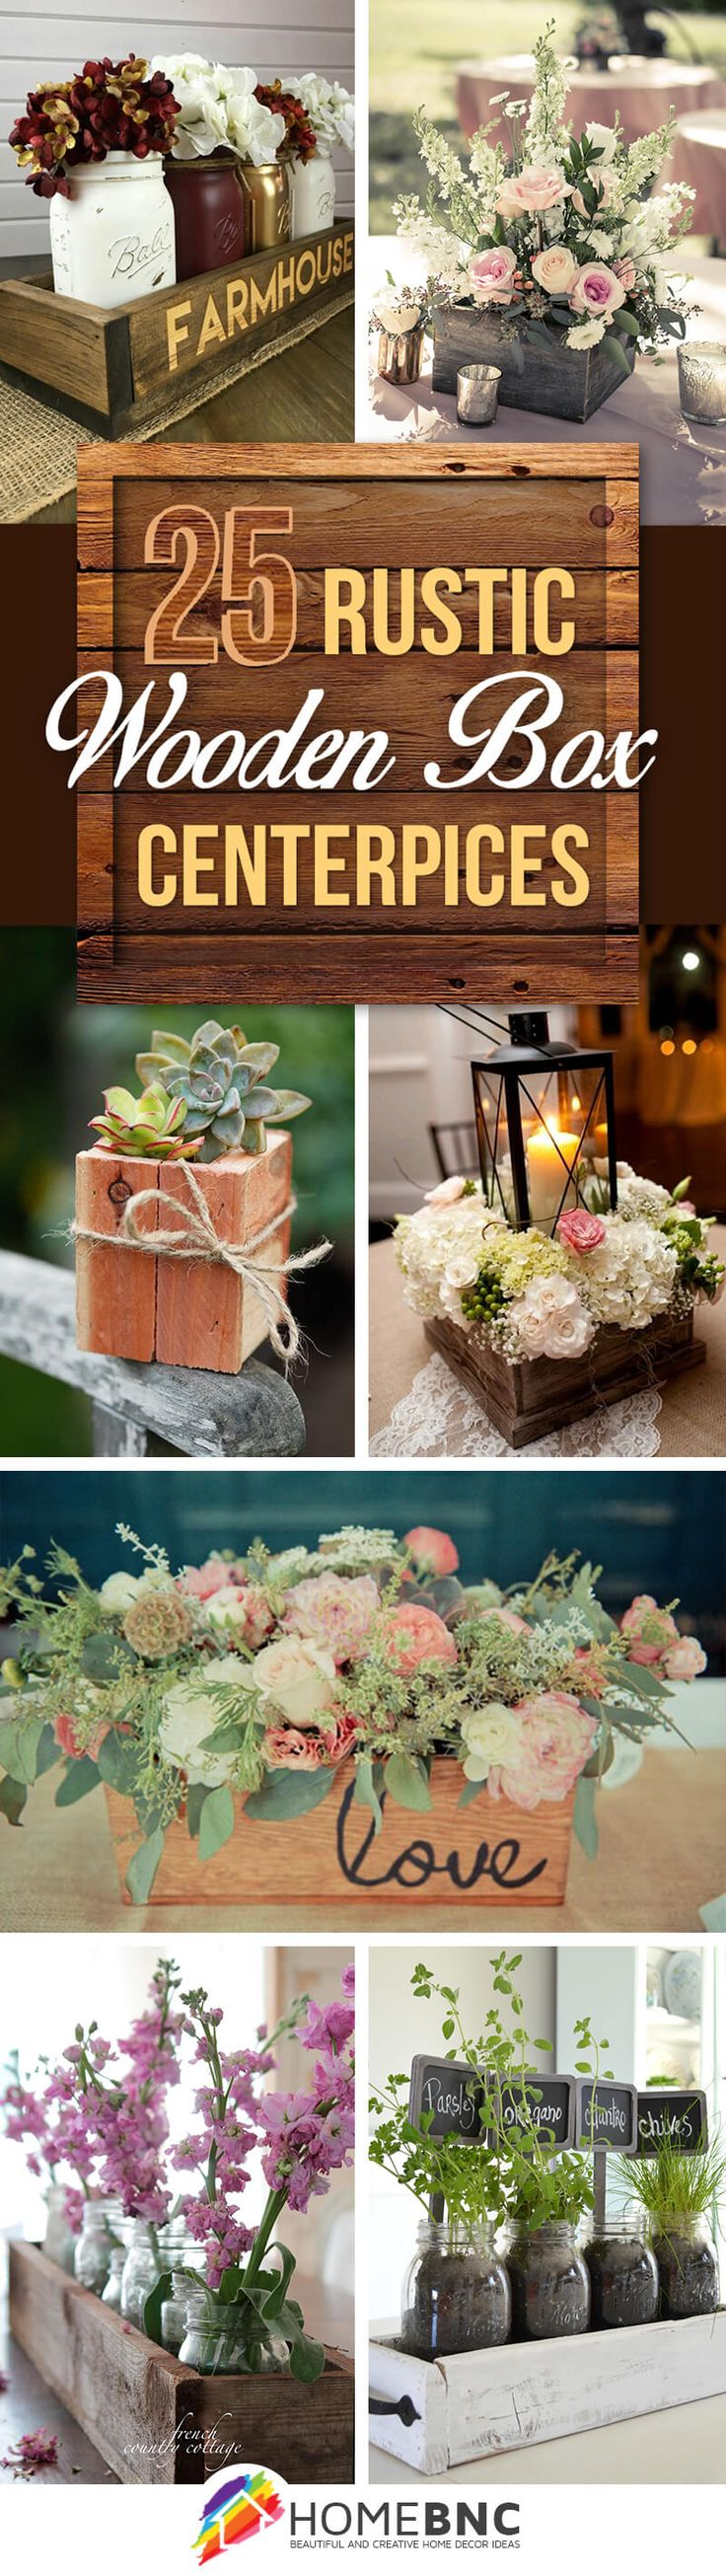 Rustic Wooden Box Centerpieces